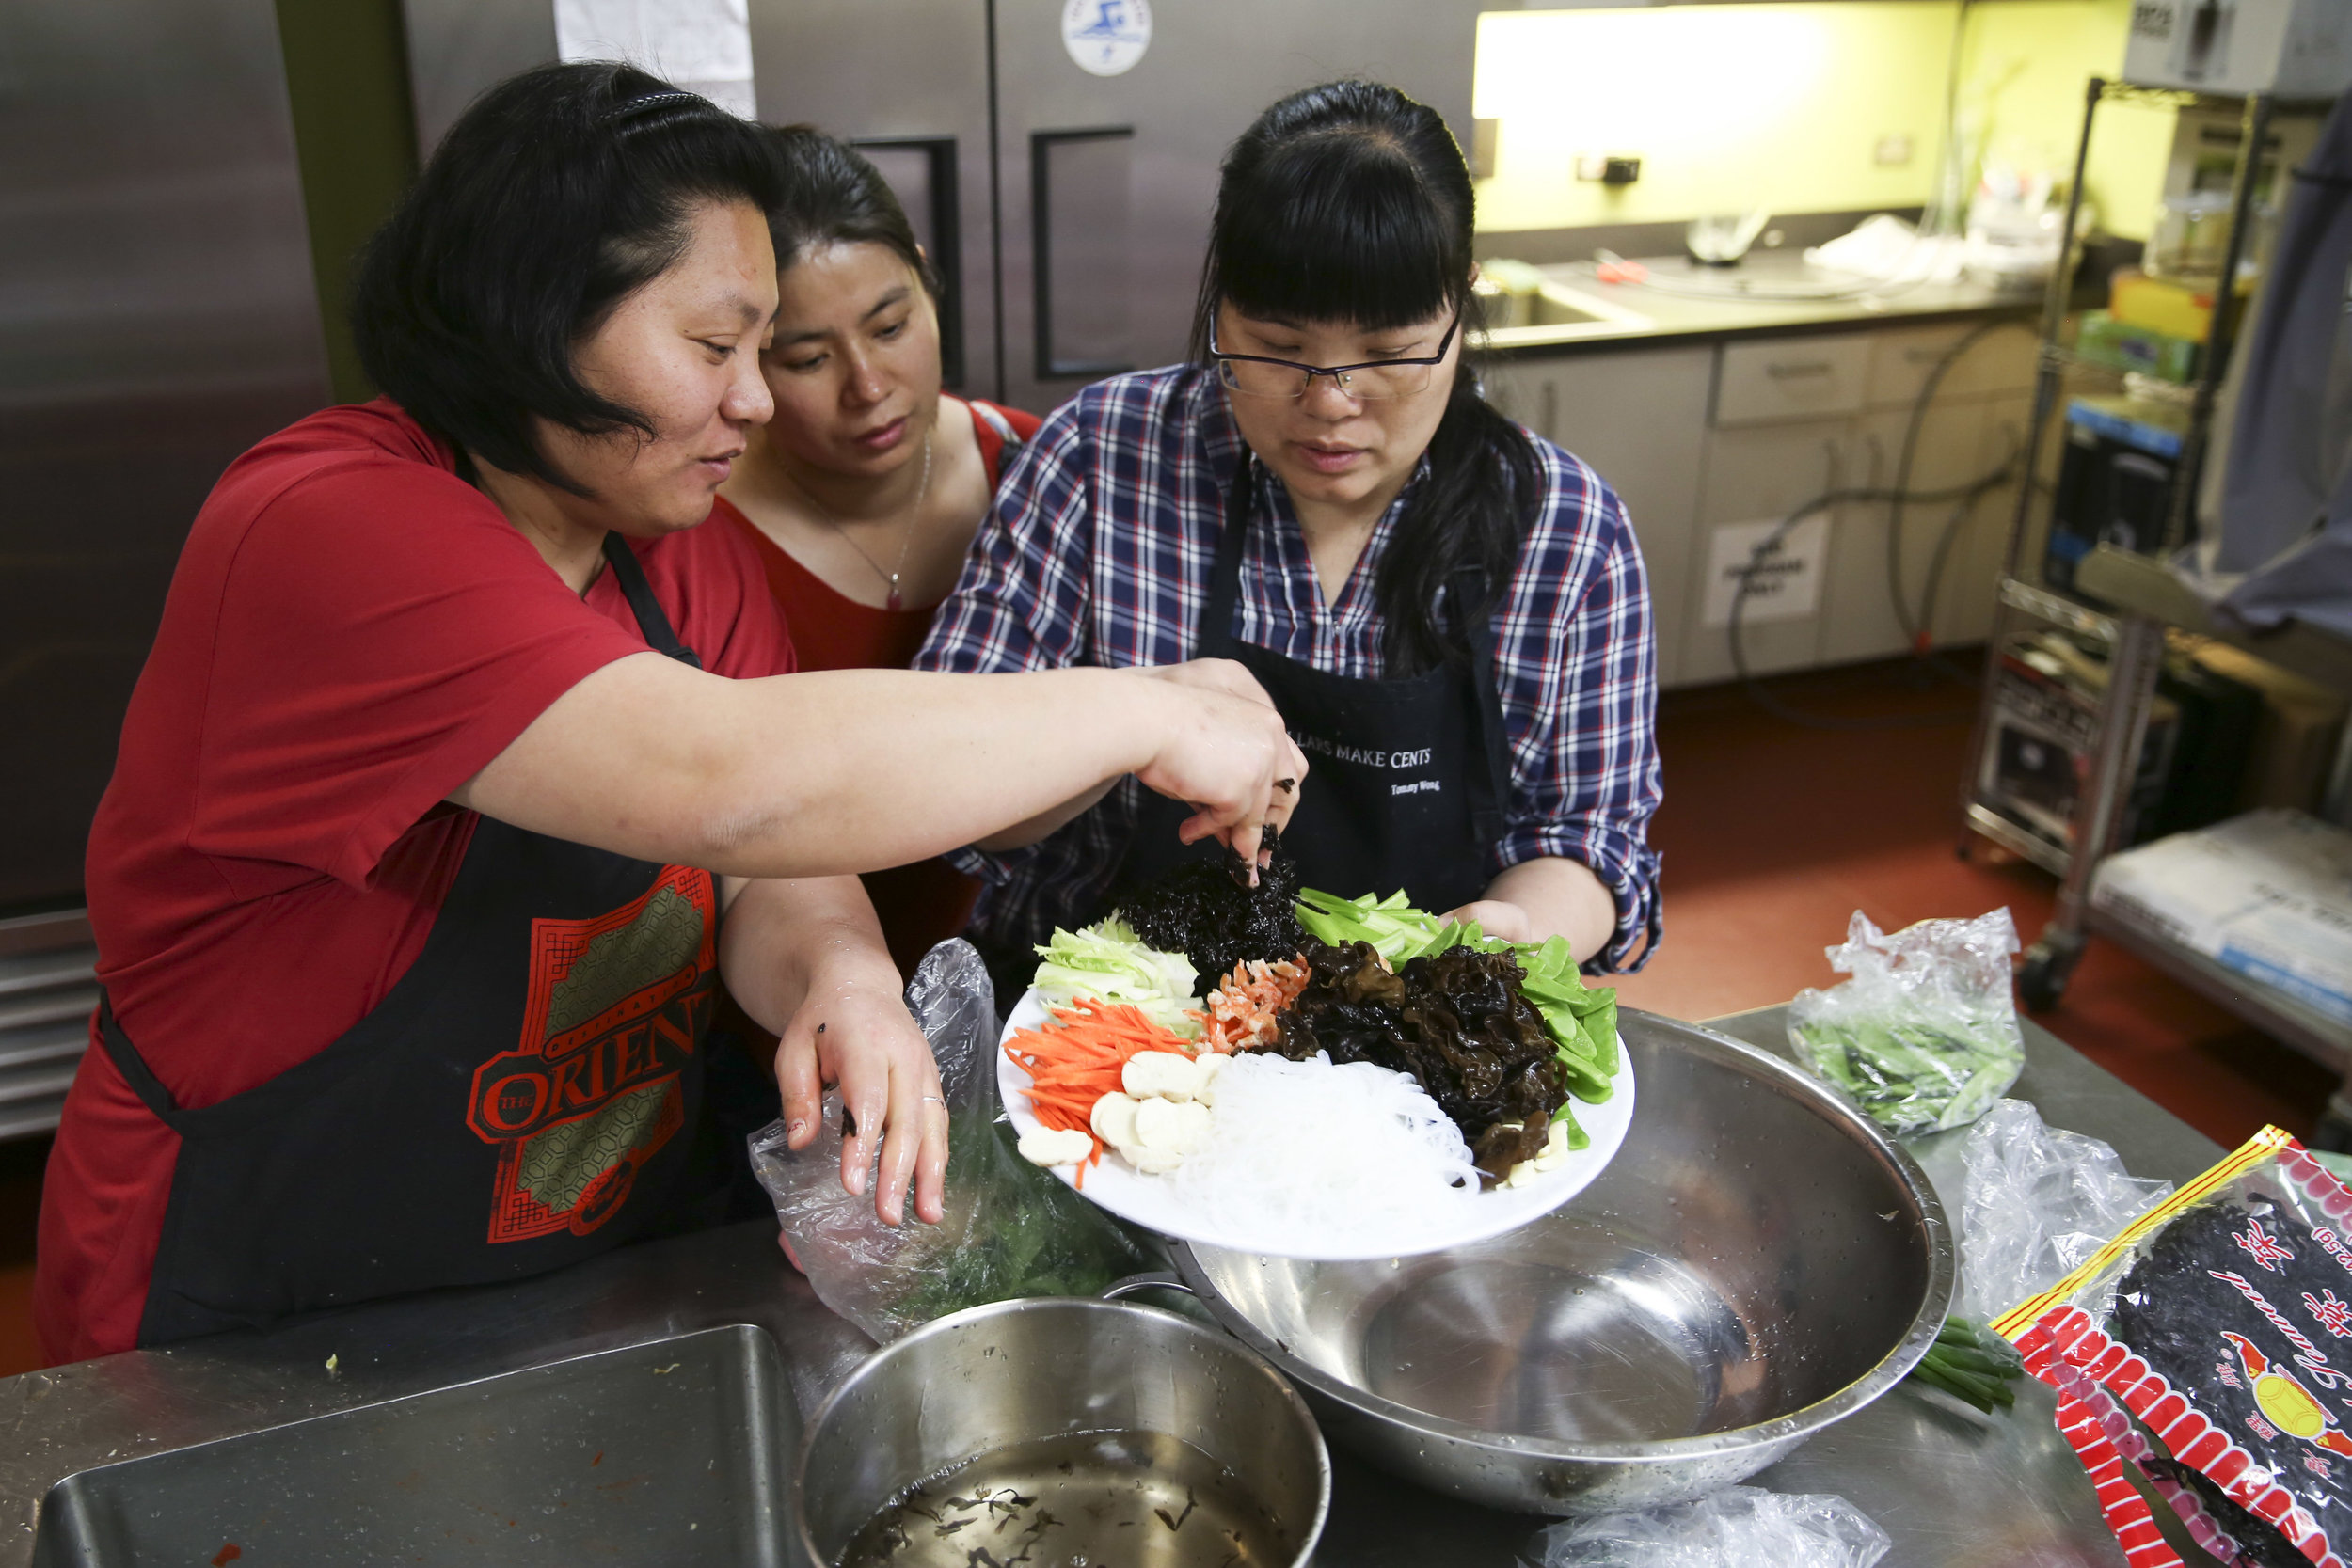 Chinatown Home Cooking - For Chinatown Community Development Center